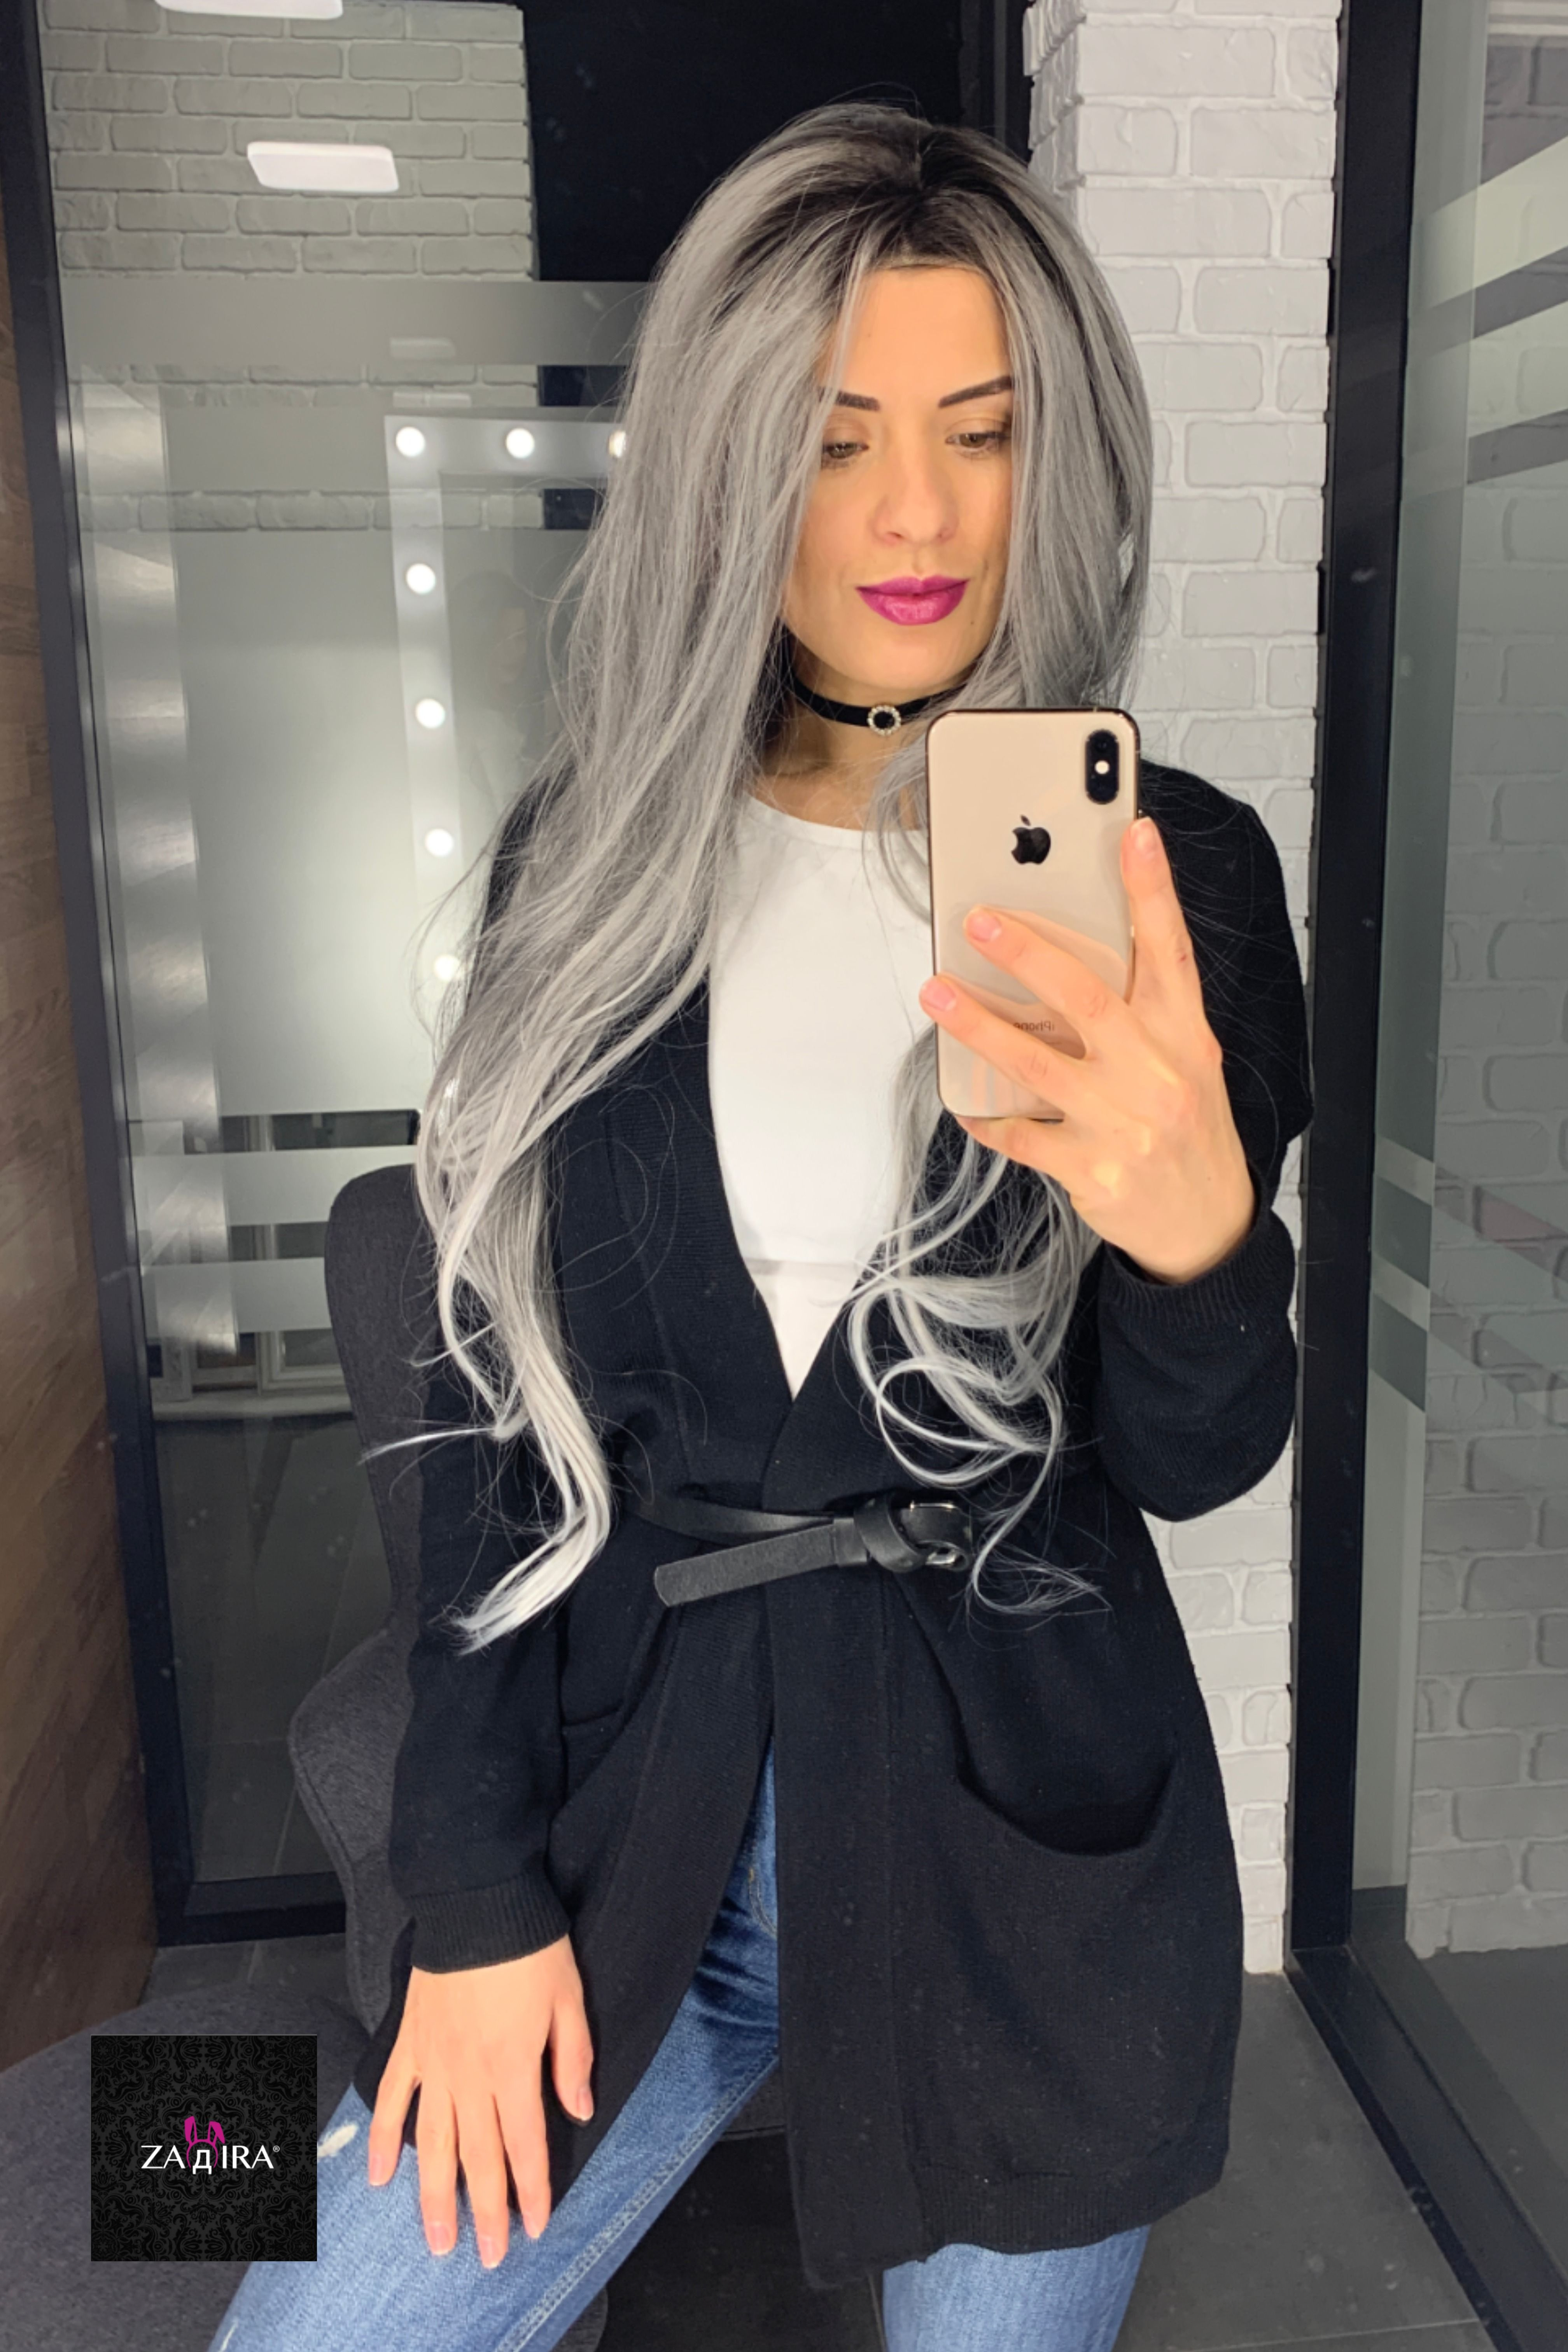 2020 New Gray Hair Wigs For African American Women Synthetic Wigs That Look Real Hair Vig Price Grey Hair At 20 Female Bachelorette Party Wigs Zero Two Wig